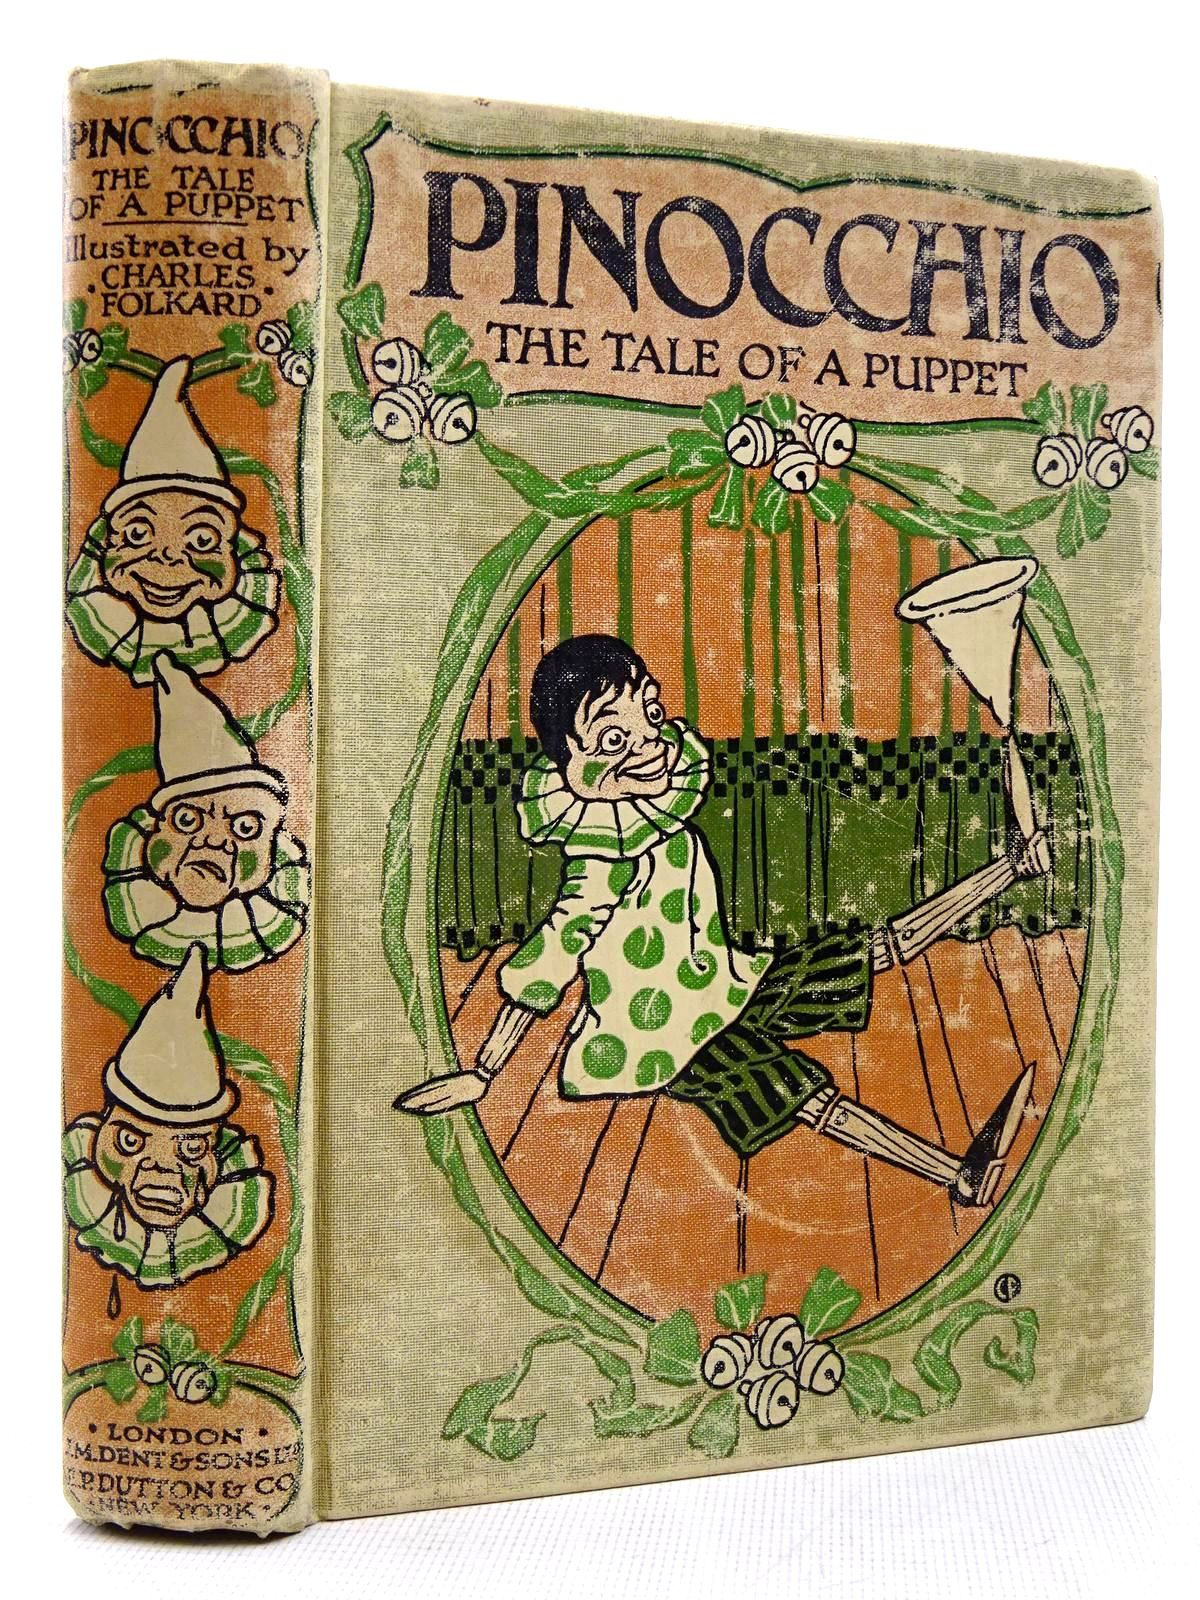 Photo of PINOCCHIO THE TALE OF A PUPPET written by Collodi, Carlo<br />Murray, M.A. illustrated by Folkard, Charles published by J.M. Dent & Sons Ltd. (STOCK CODE: 2129158)  for sale by Stella & Rose's Books